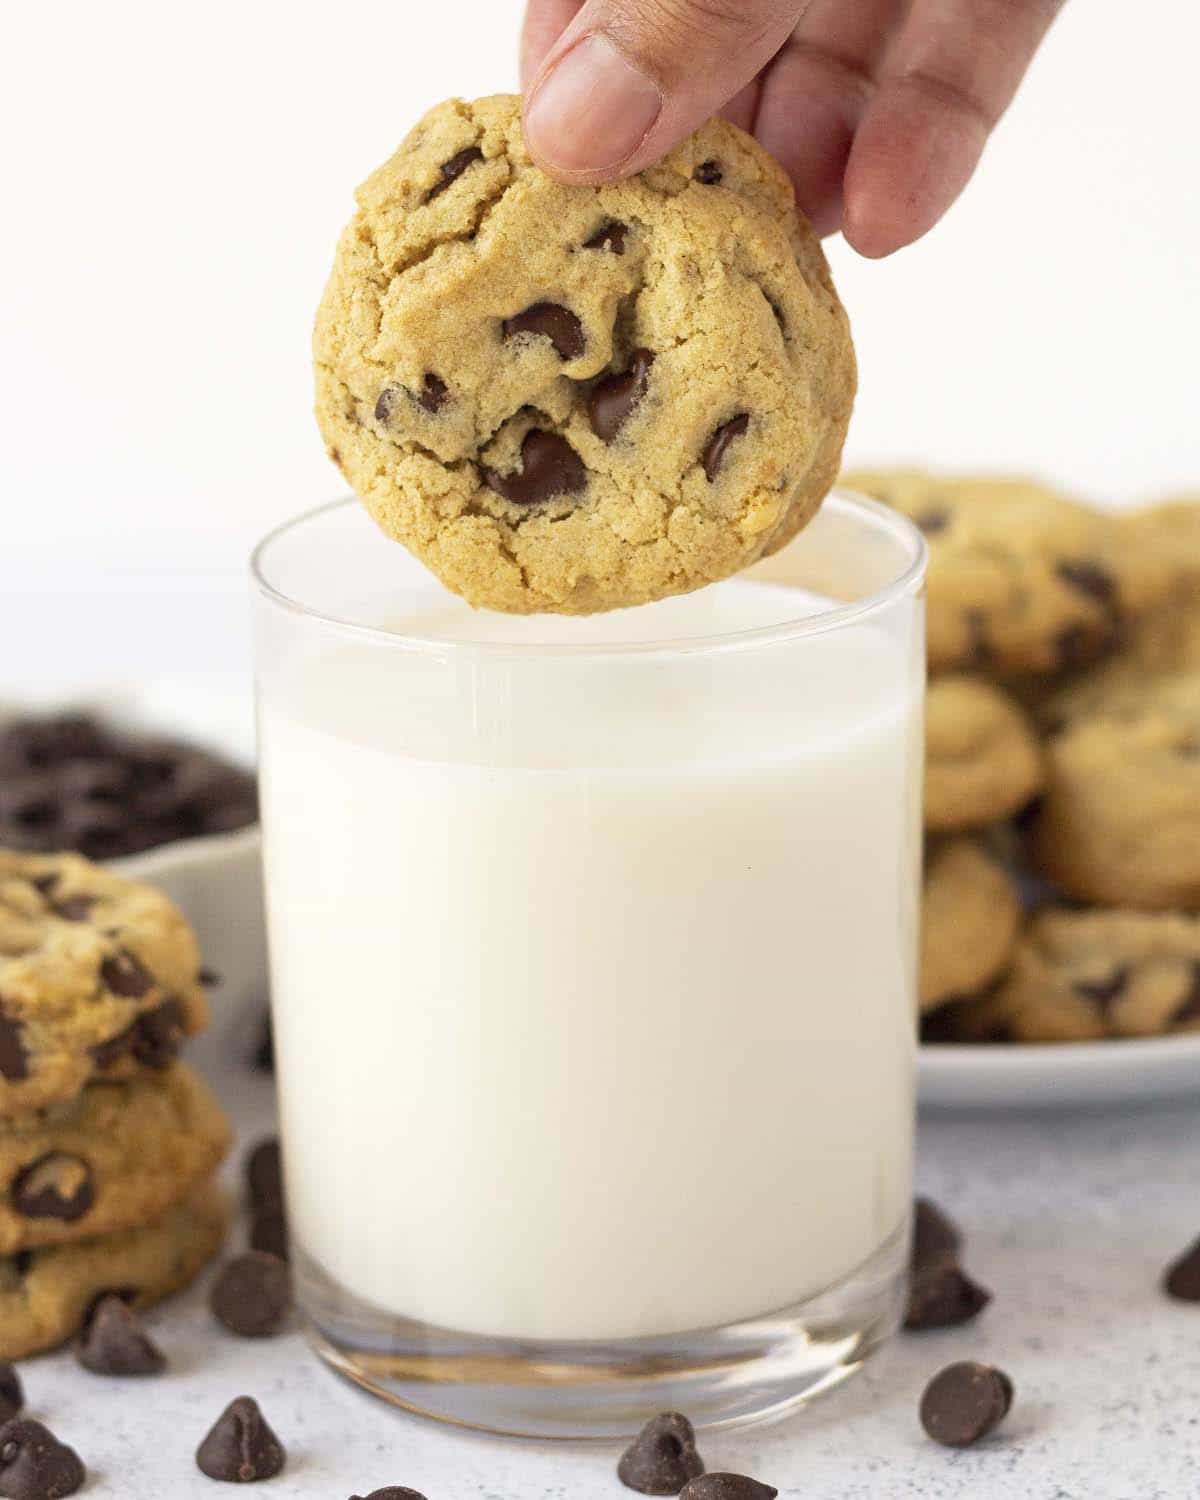 A hand holding a gluten-free chocolate chip cookie above a glass of almond milk.